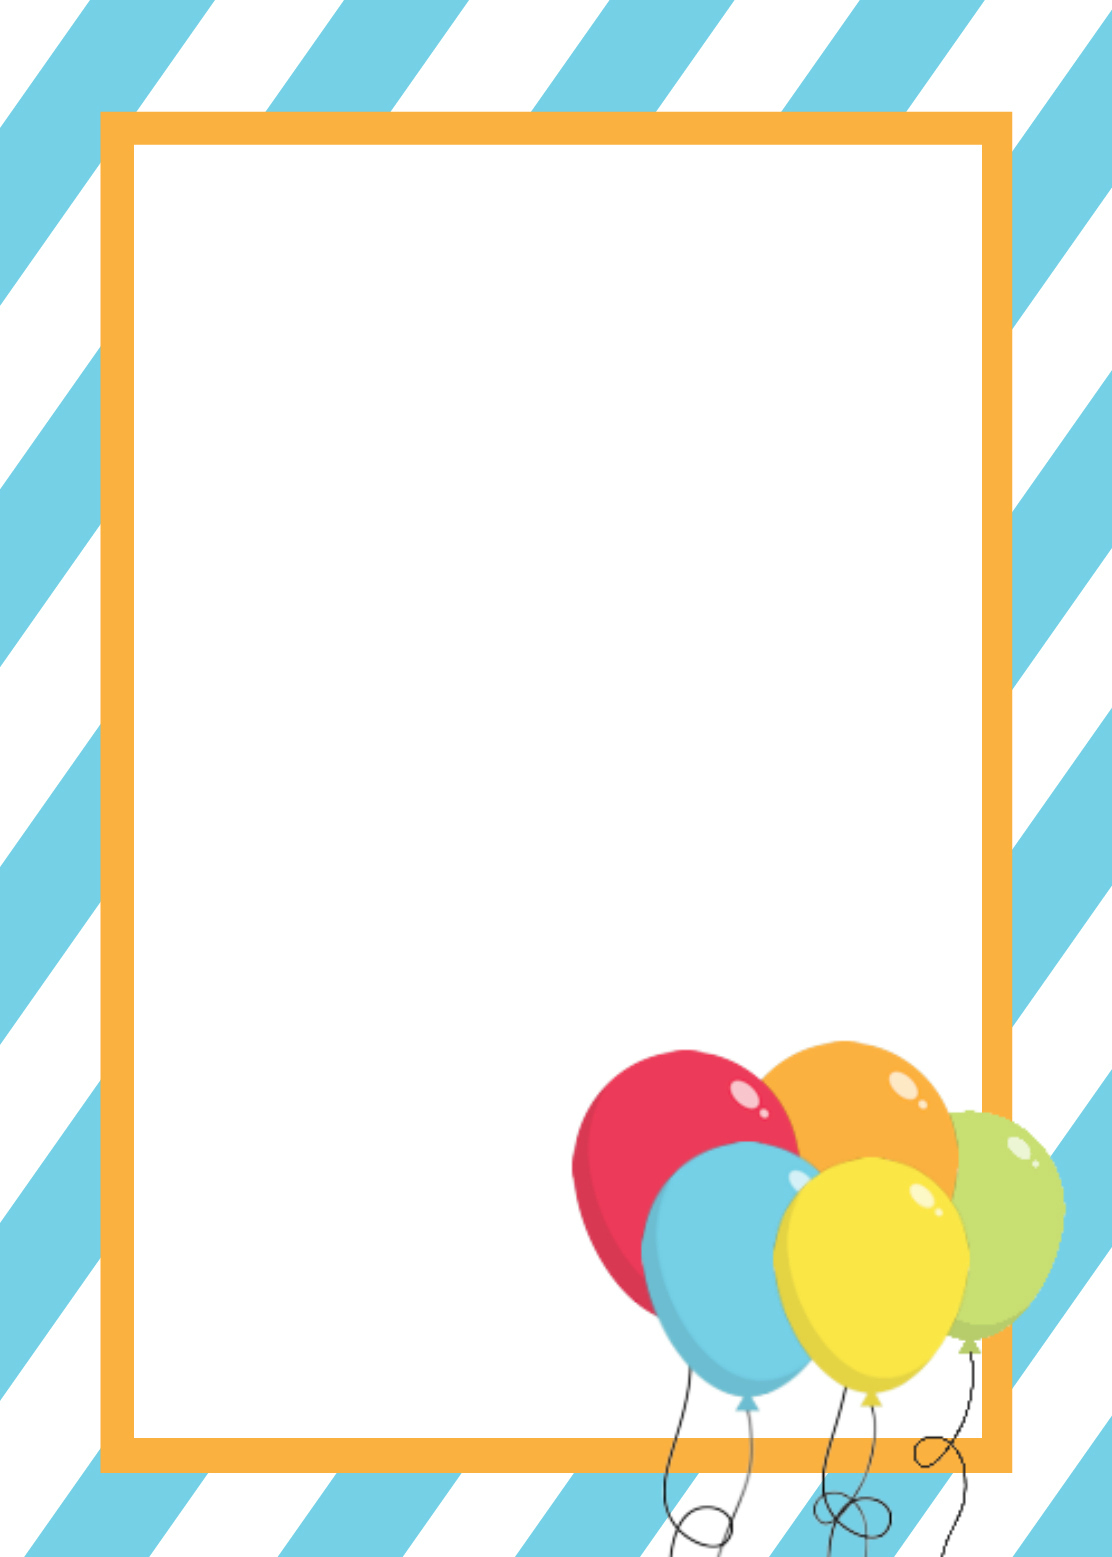 Free printable birthday invitation templates free birthday invitation templates filmwisefo Images